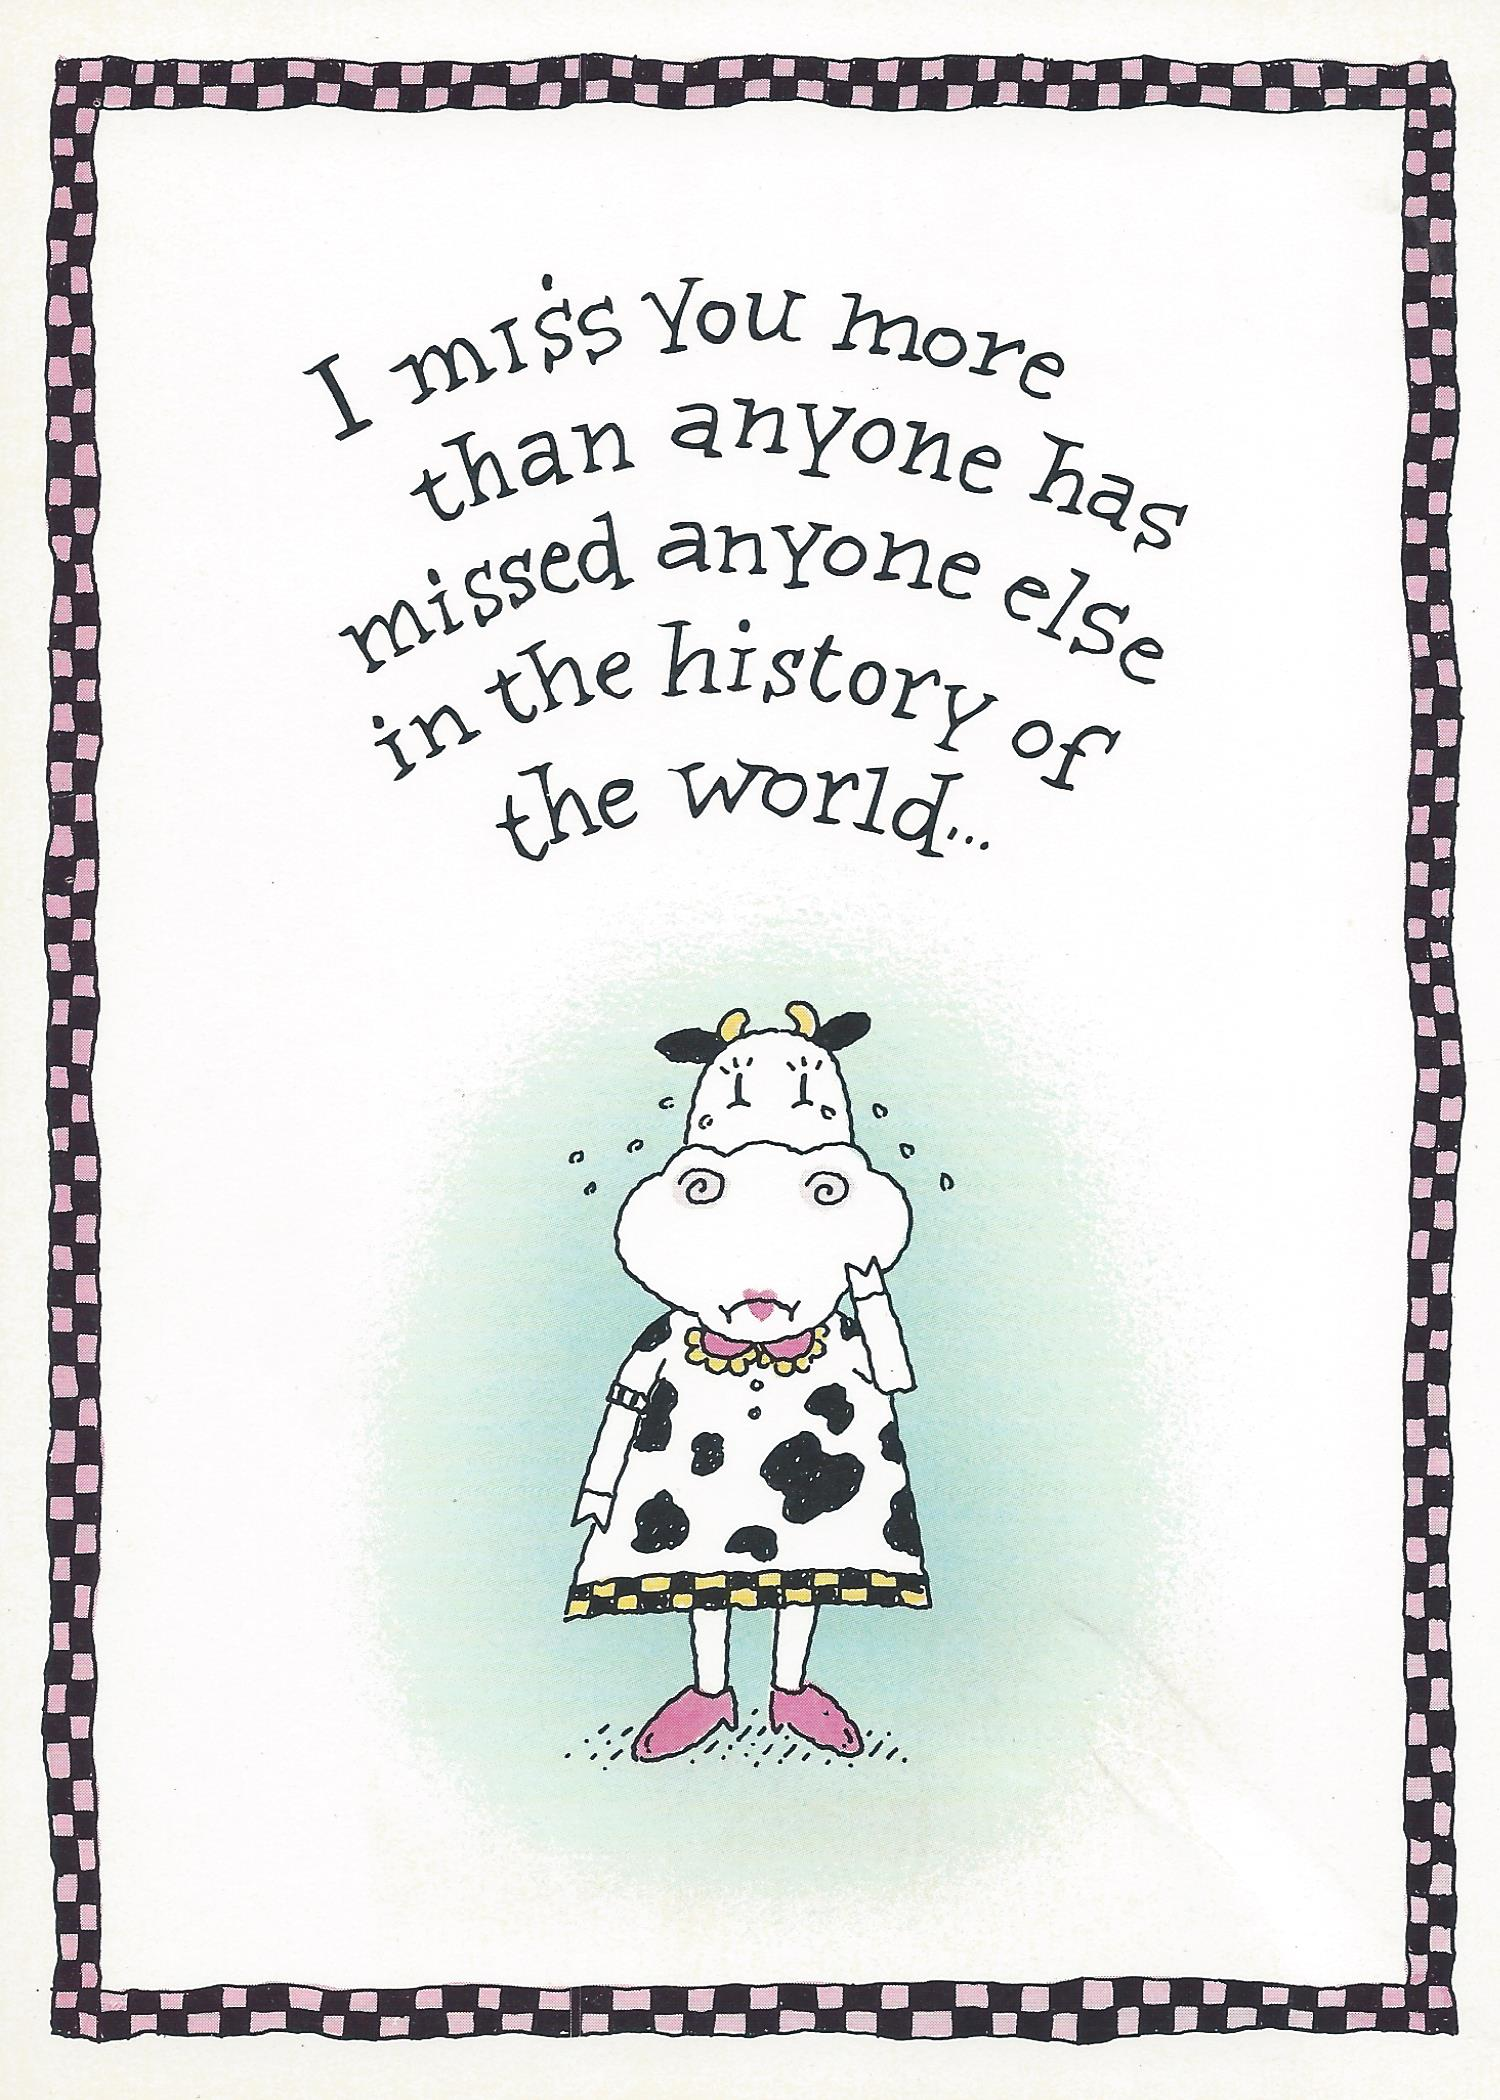 I miss you more than anyone has missed anyone else in the history of the world...